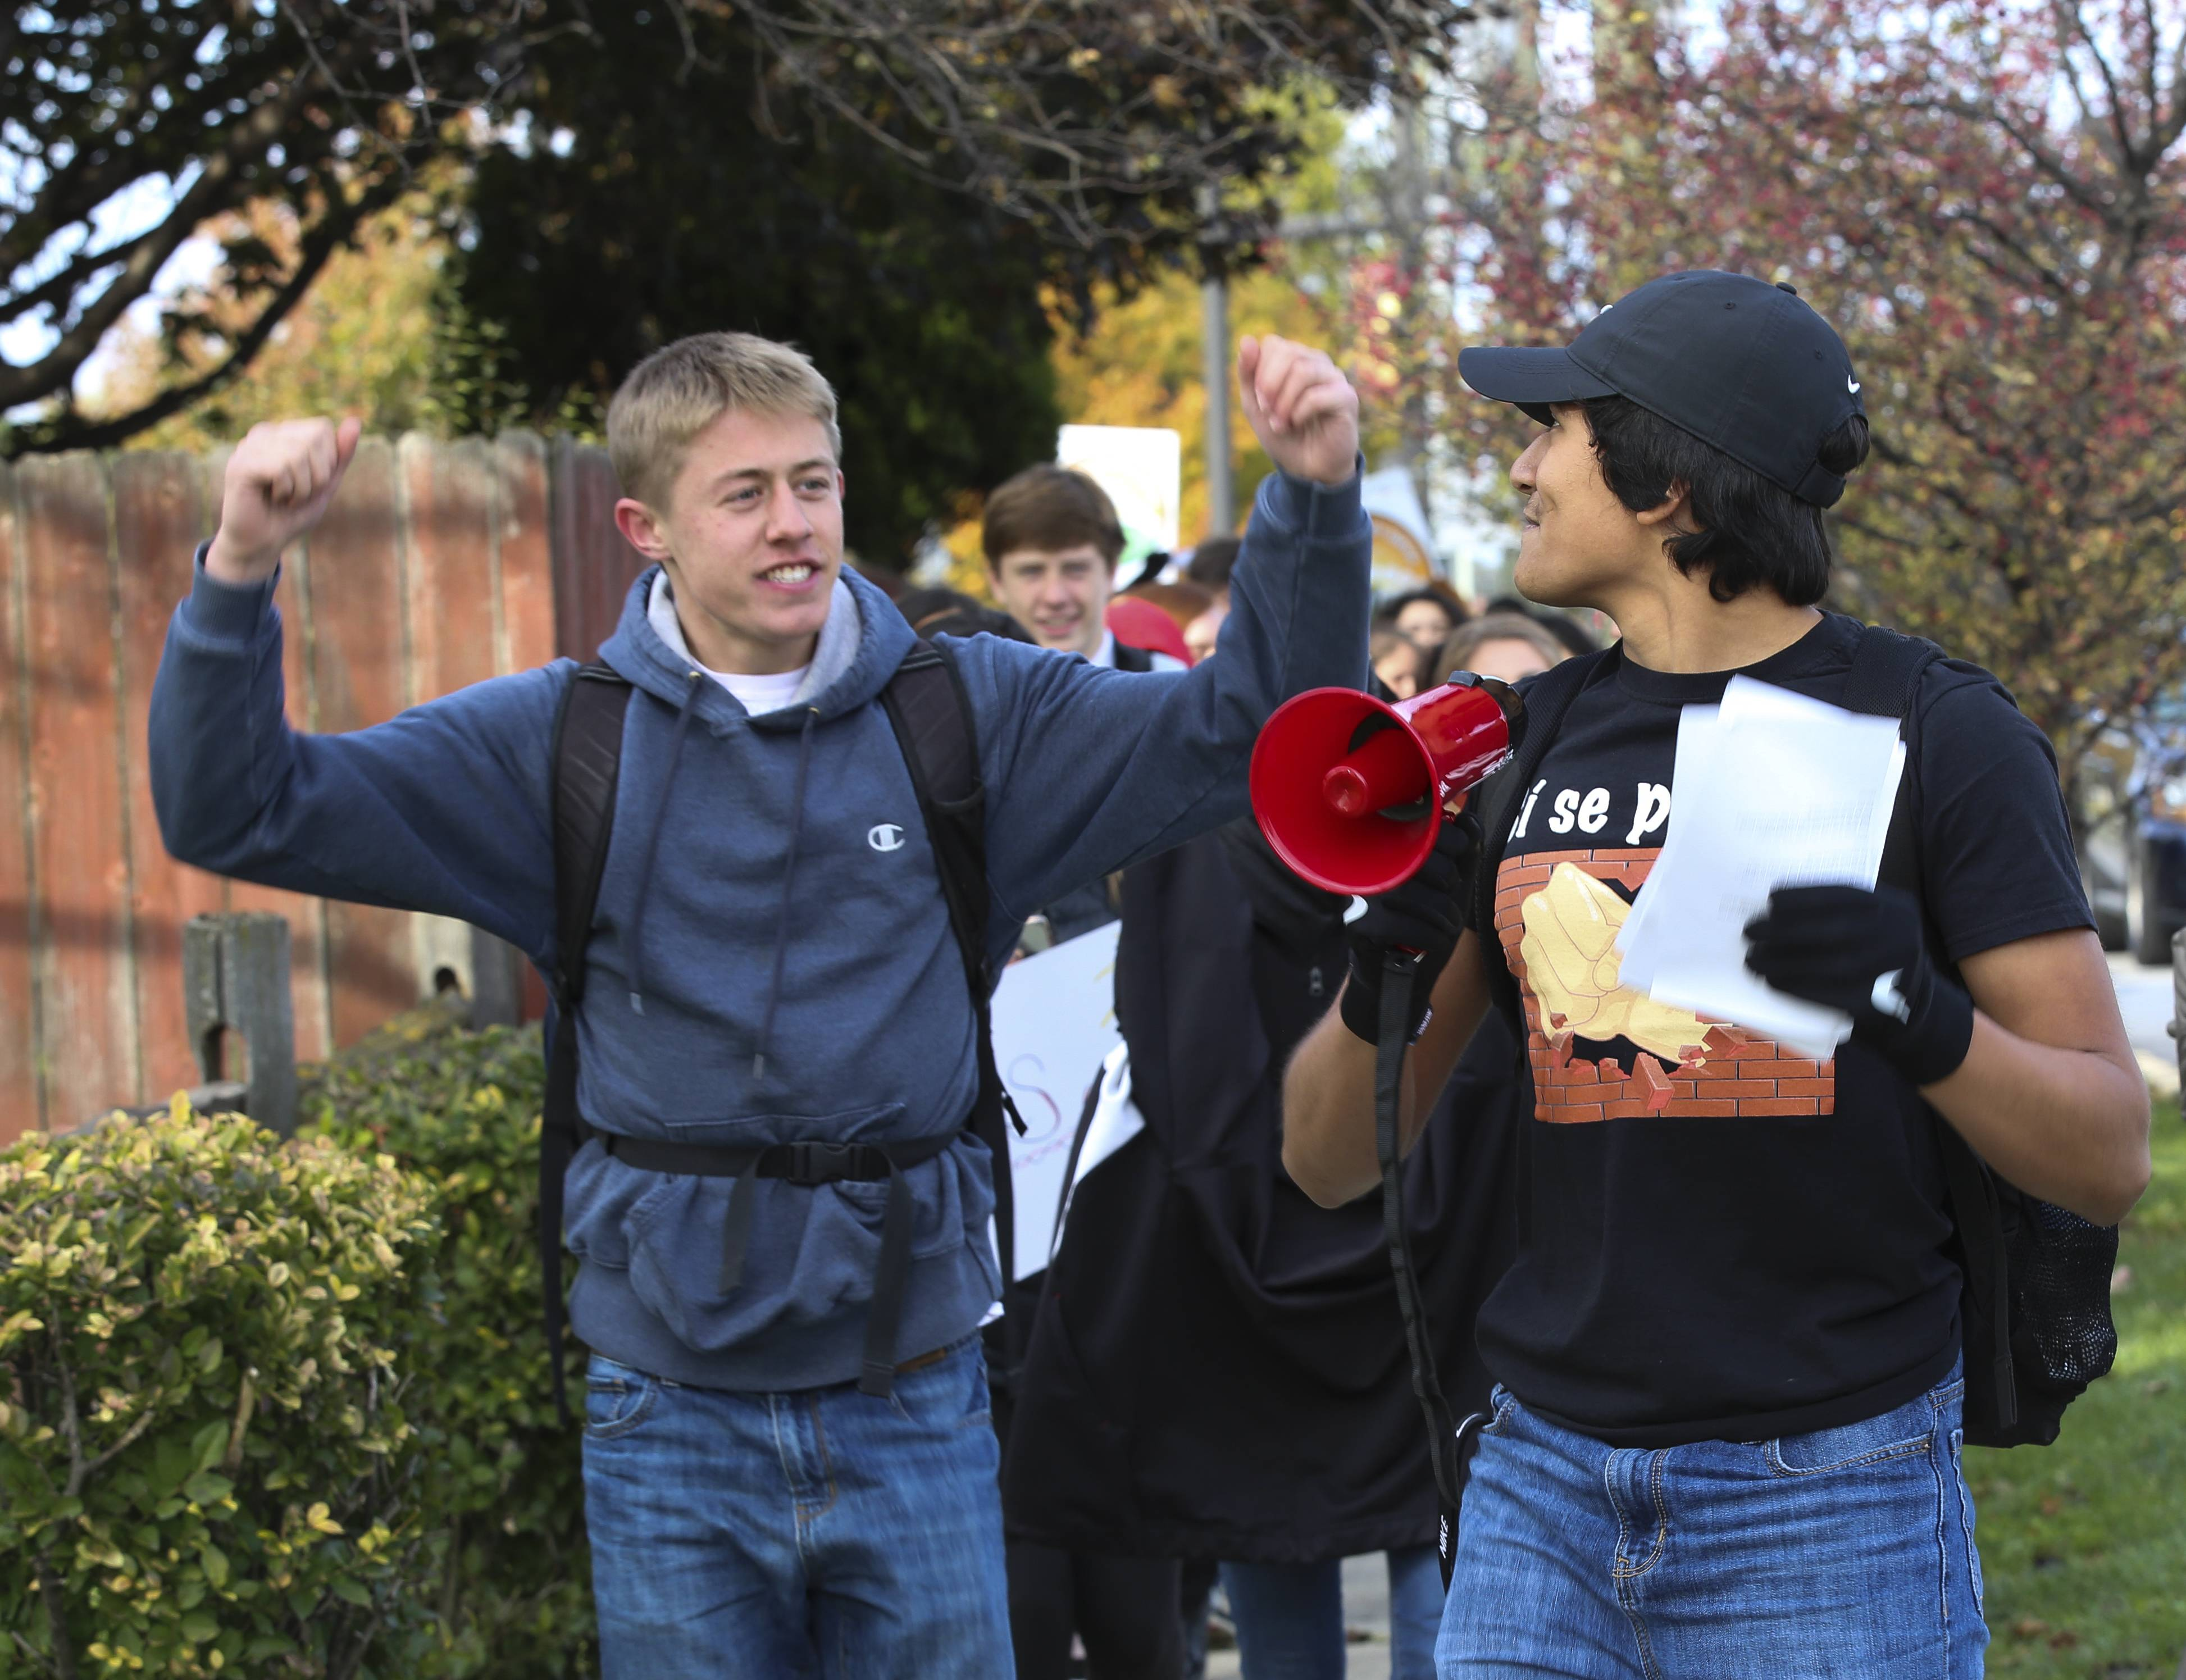 Jimmy Lynch, left, a senior at Glenbard East, says he organized a Friday march to call attention to the Deferred Action for Childhood Arrivals program. He said the program should be made permanent.